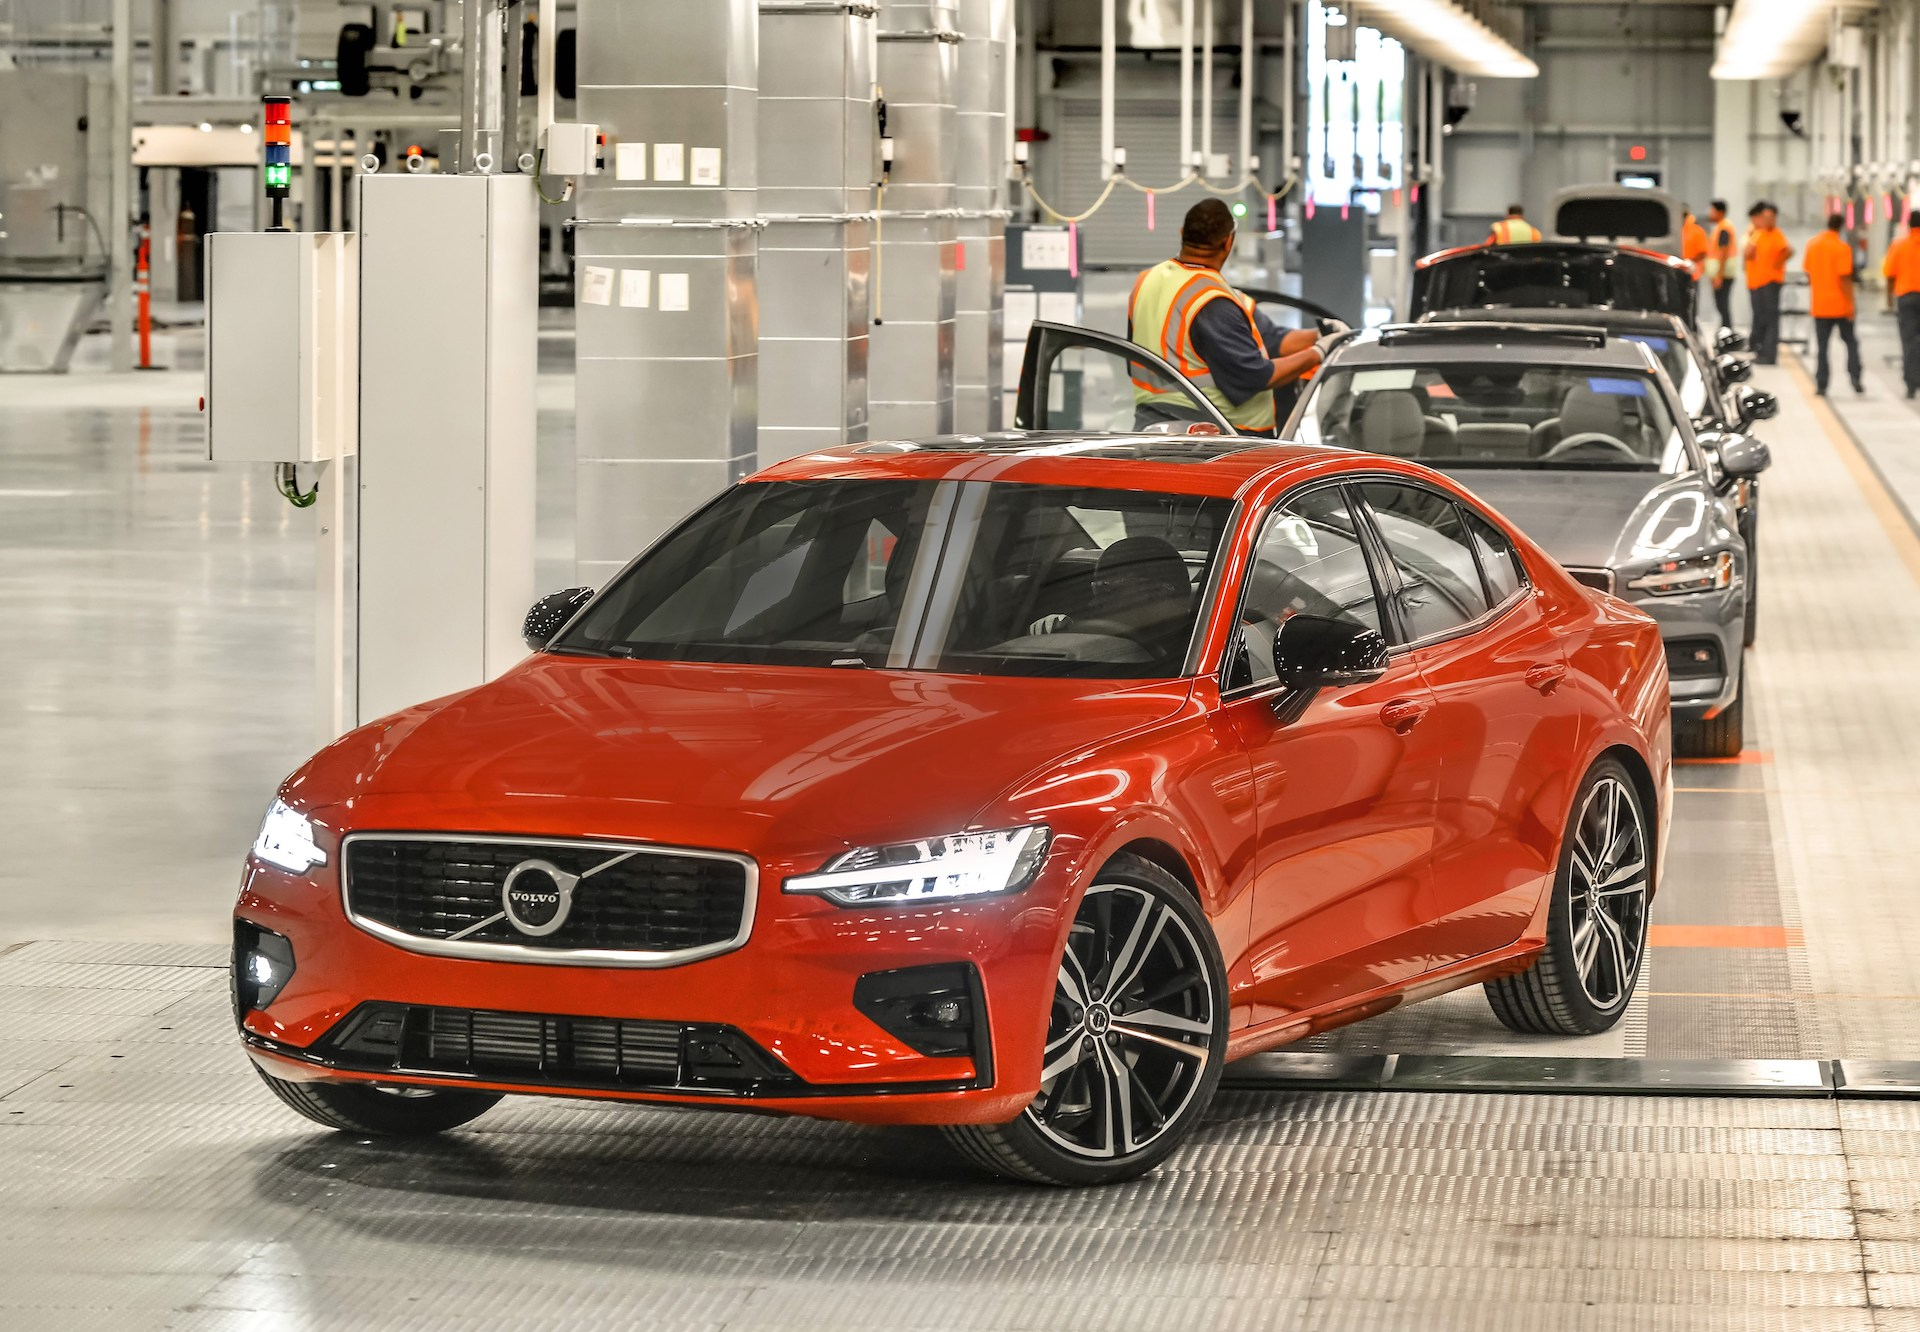 2019 Volvo S60 2020 Mercedes Amg Cla35 Final C7 Corvette This